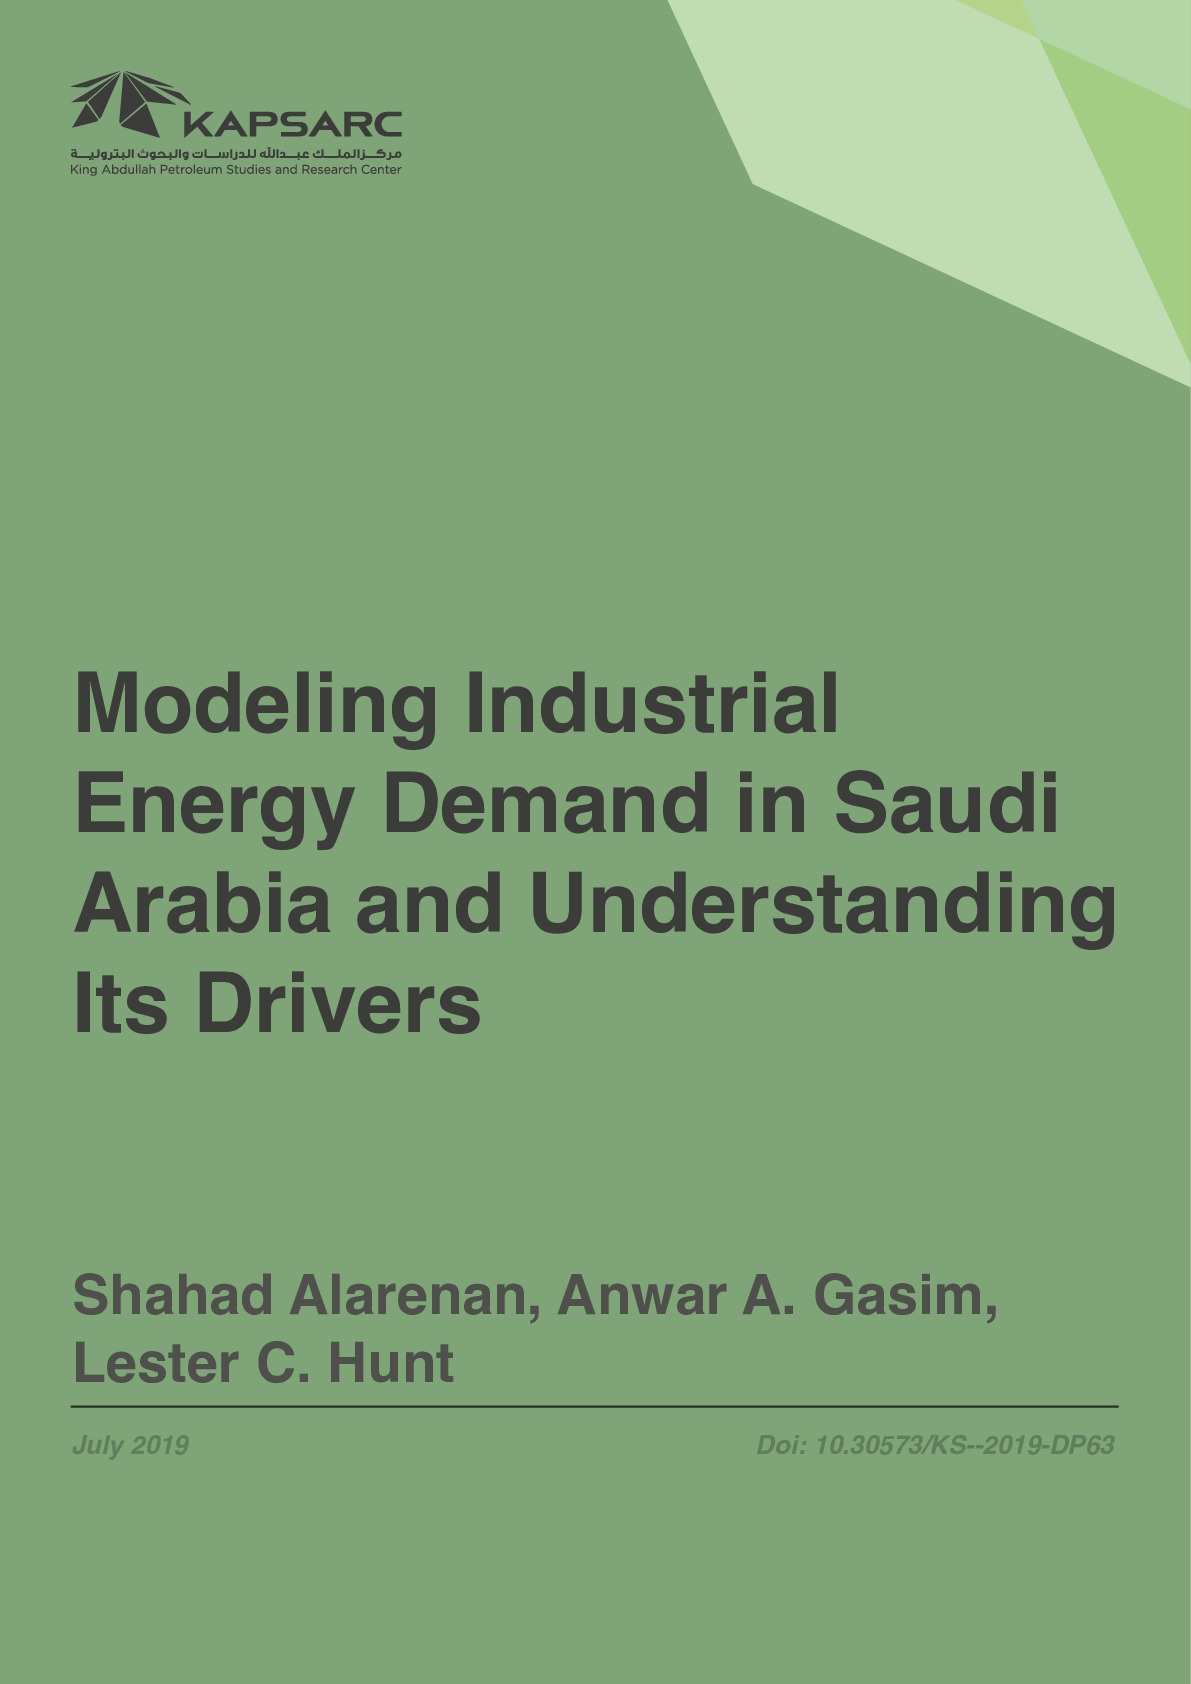 Modeling Industrial Energy Demand in Saudi Arabia and Understanding Its Drivers